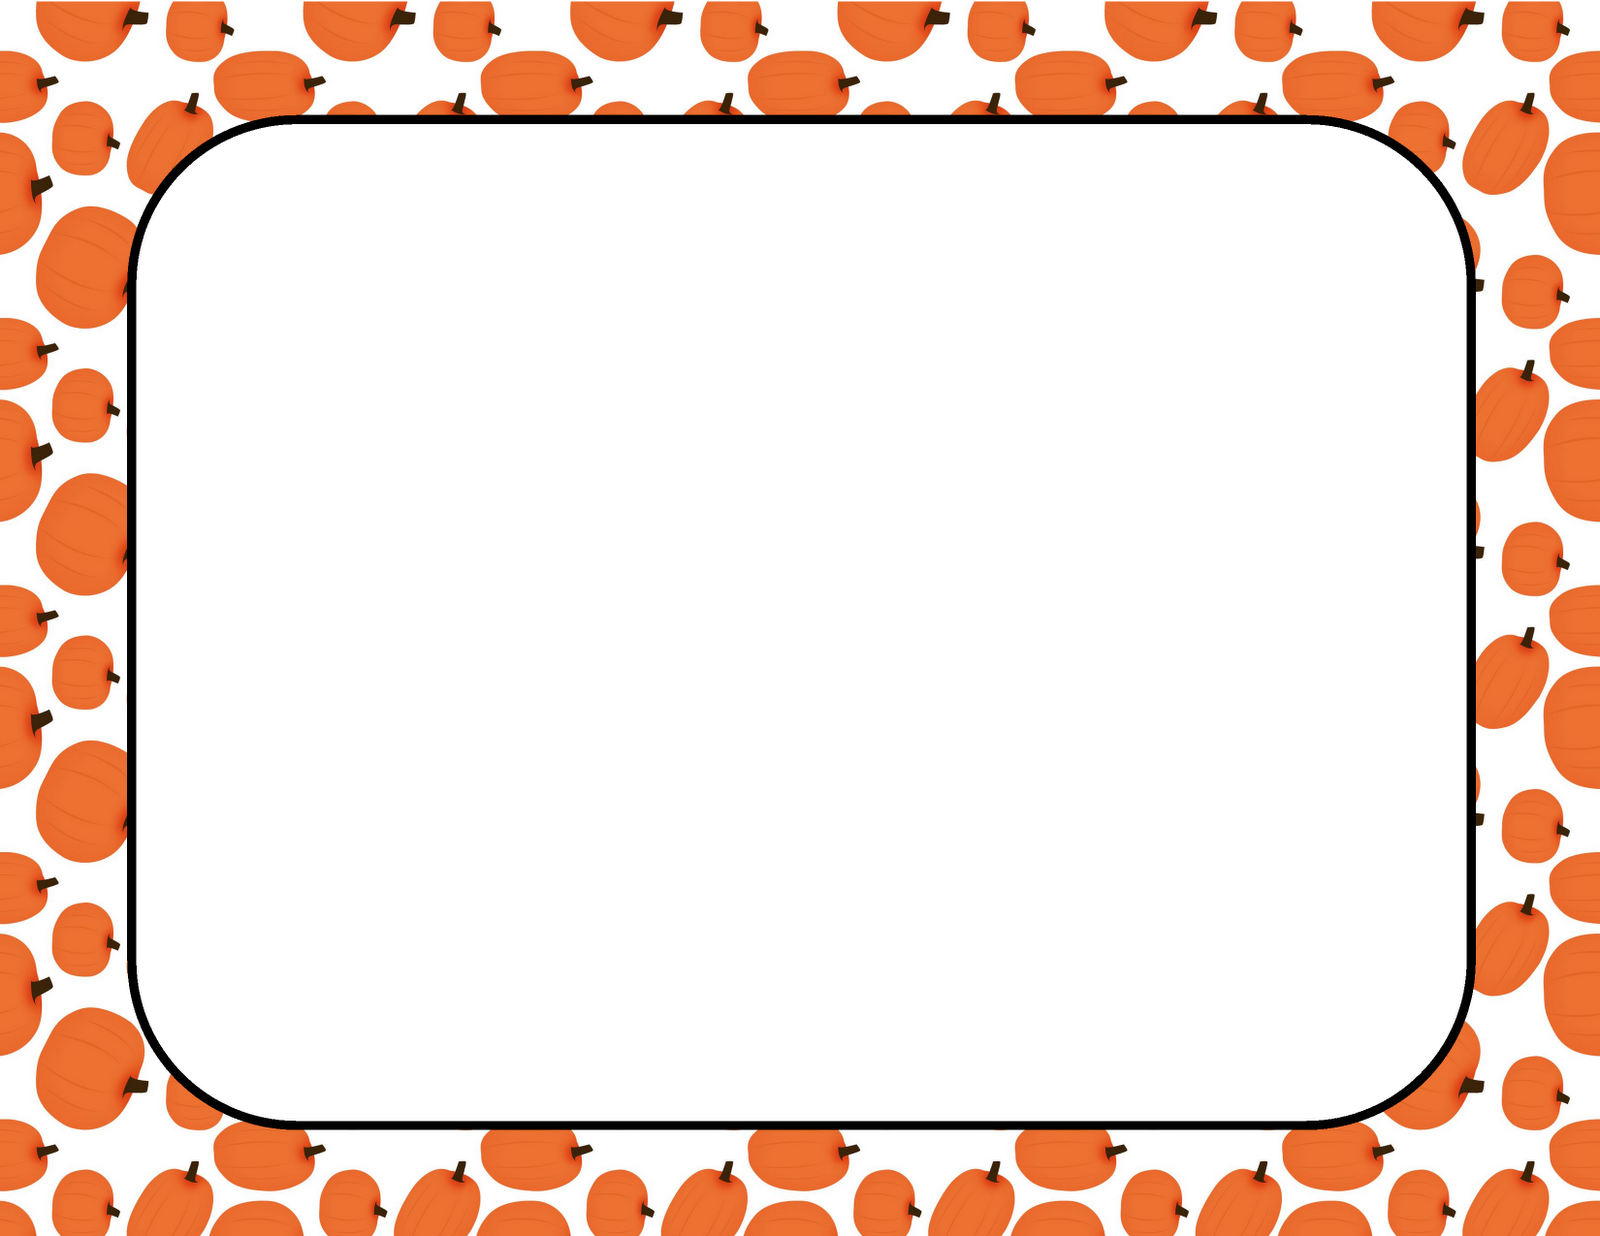 Pumpkin Border Clip Art Displaying 15 Images For Fall Pumpkin Border